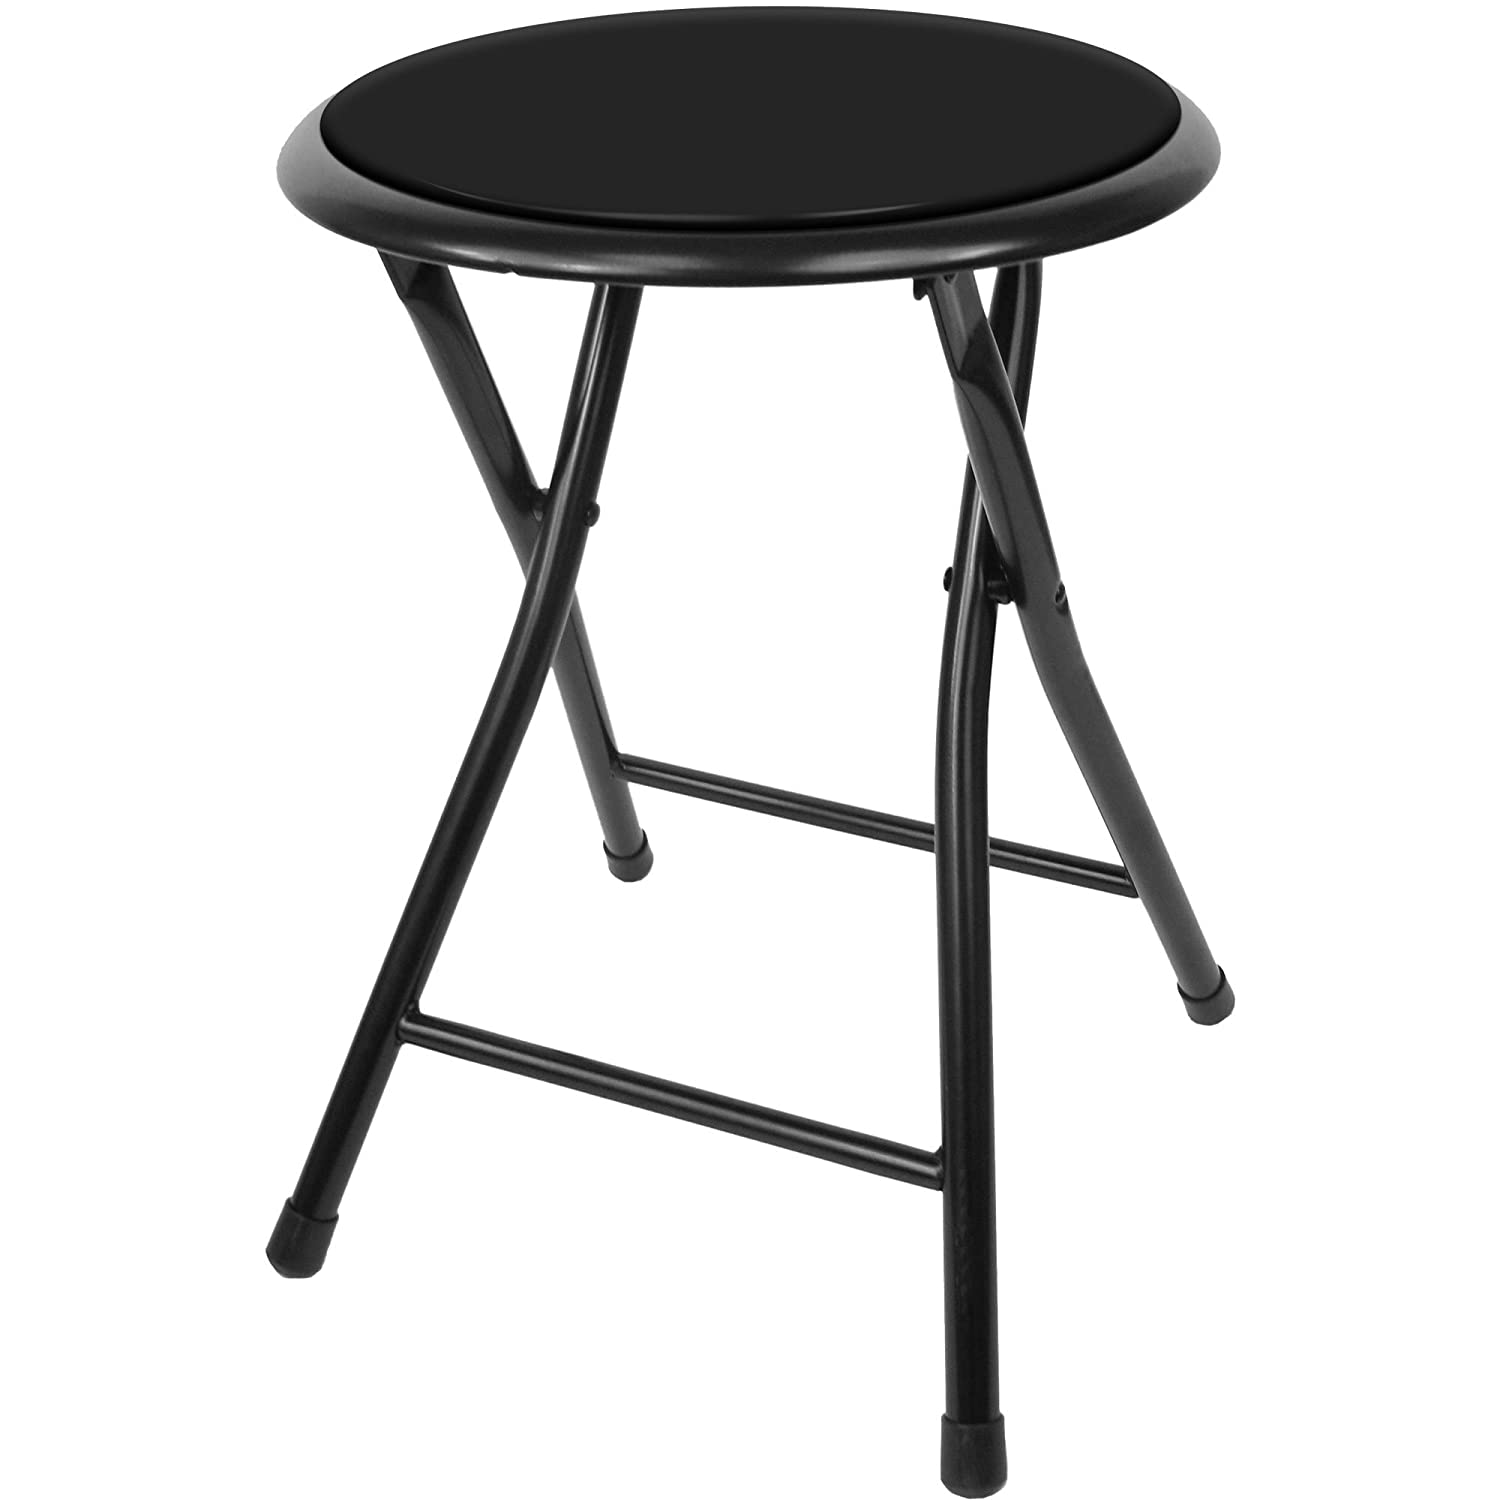 Black Cushioned Folding Stool Only 8 50 Amazon Deals